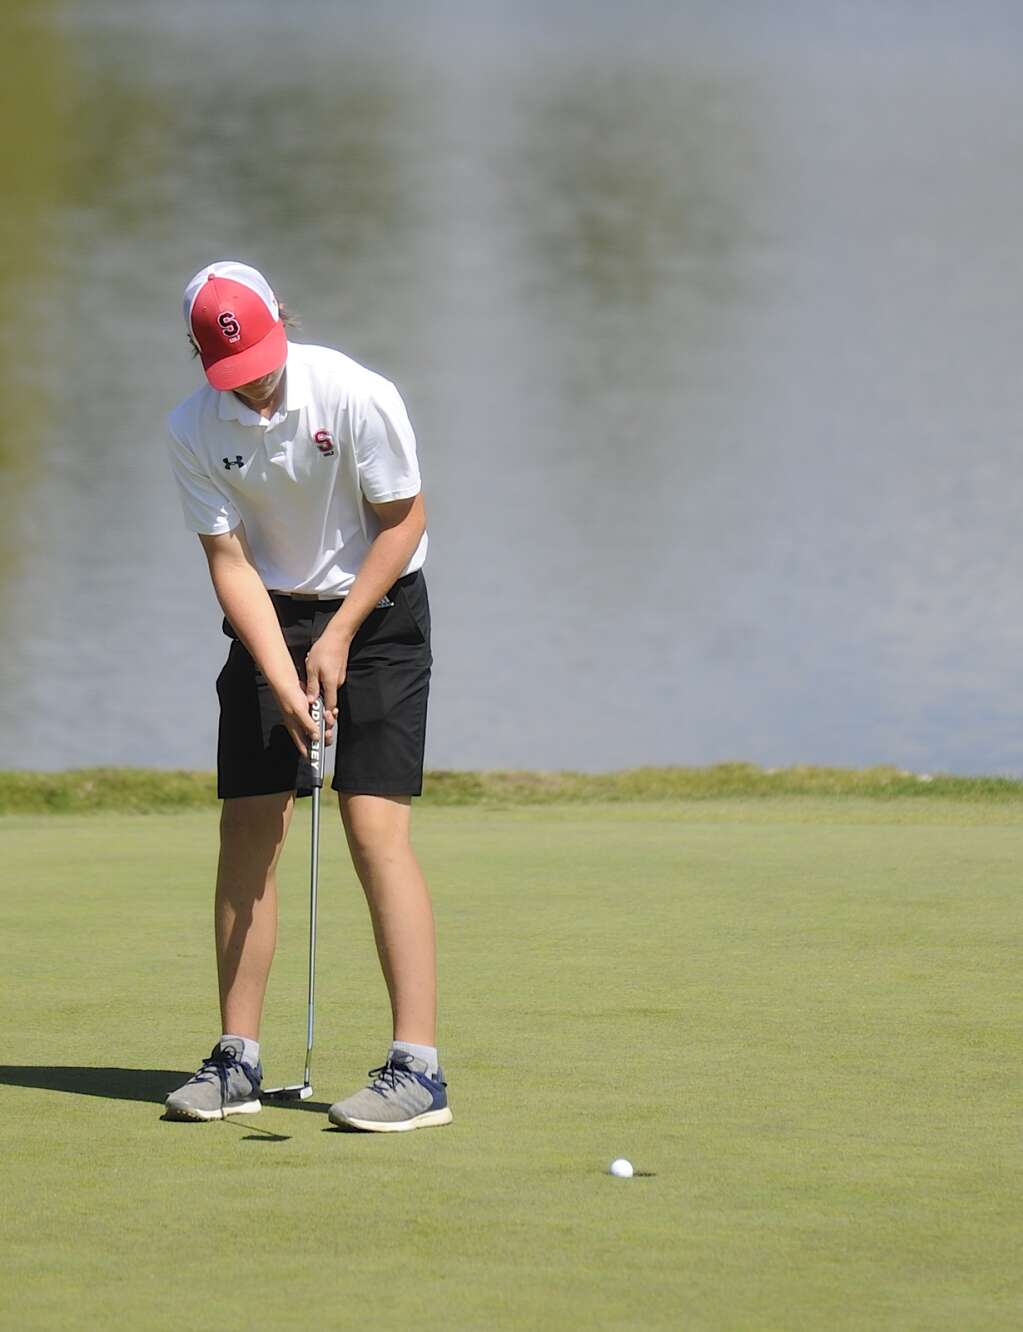 Steamboat Springs junior Jeremy Nolting putts on hole 10 at the Steamboat Sailor Invitational at Haymaker Golf Course on Tuesday. | Shelby Reardon/Steamboat Pilot & Today